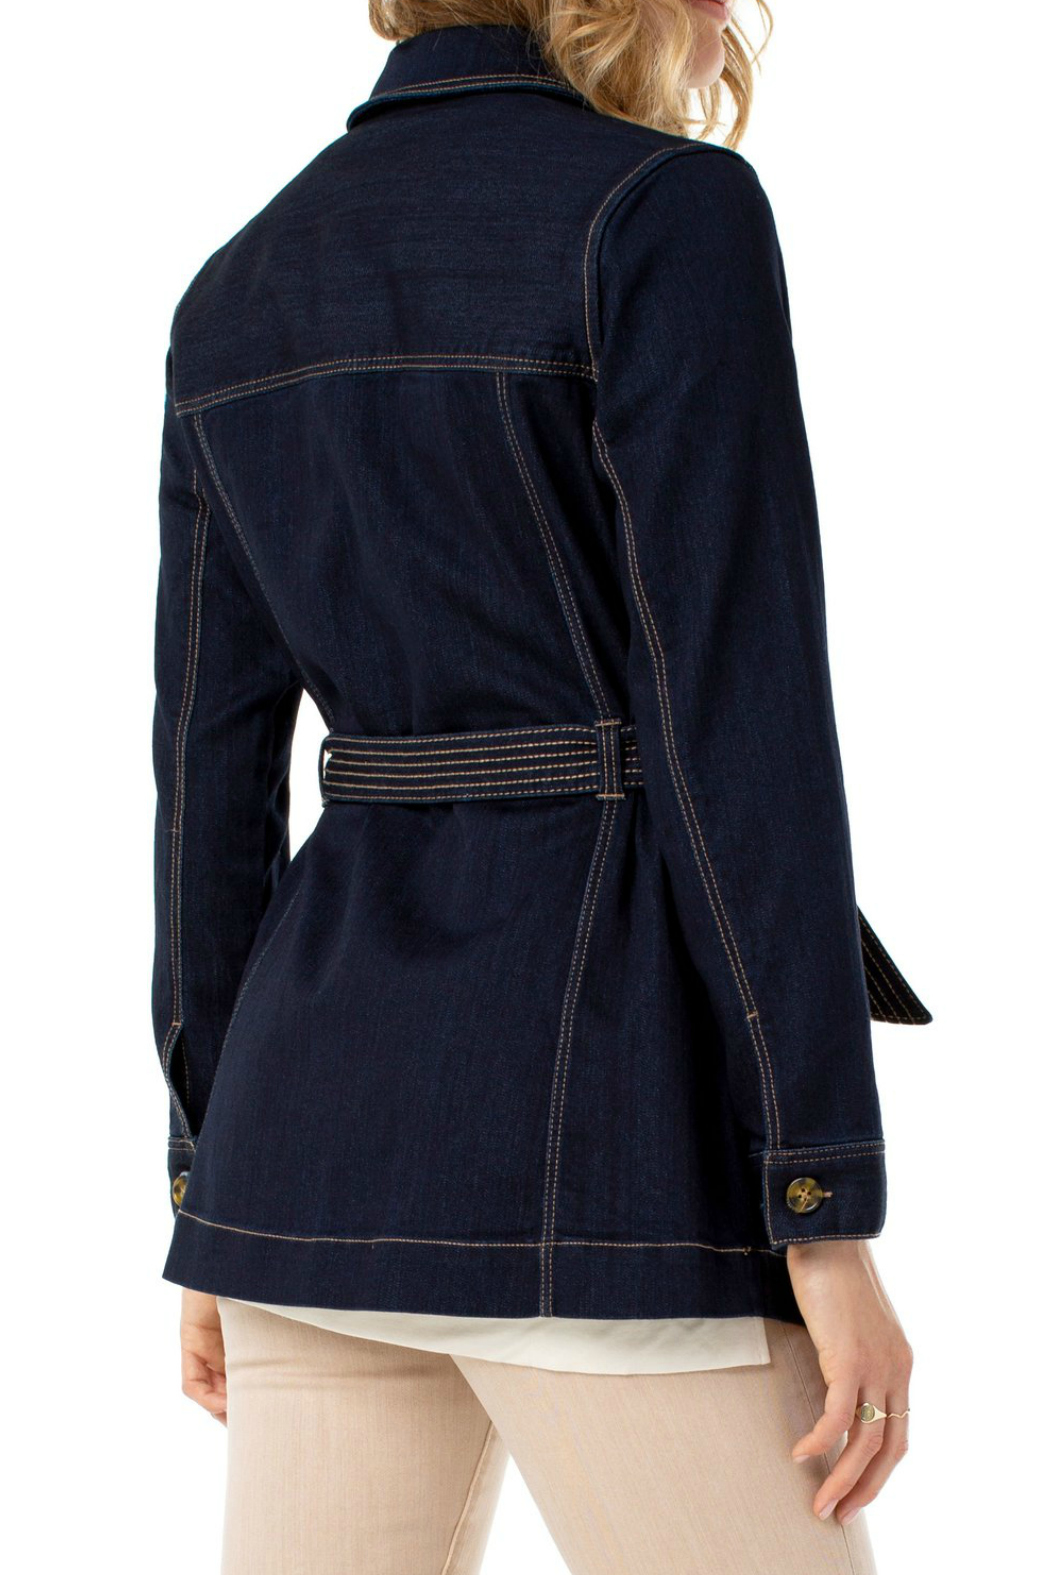 Liverpool  BELTED LONG JACKET SILKY SOFT - Side Cropped Image